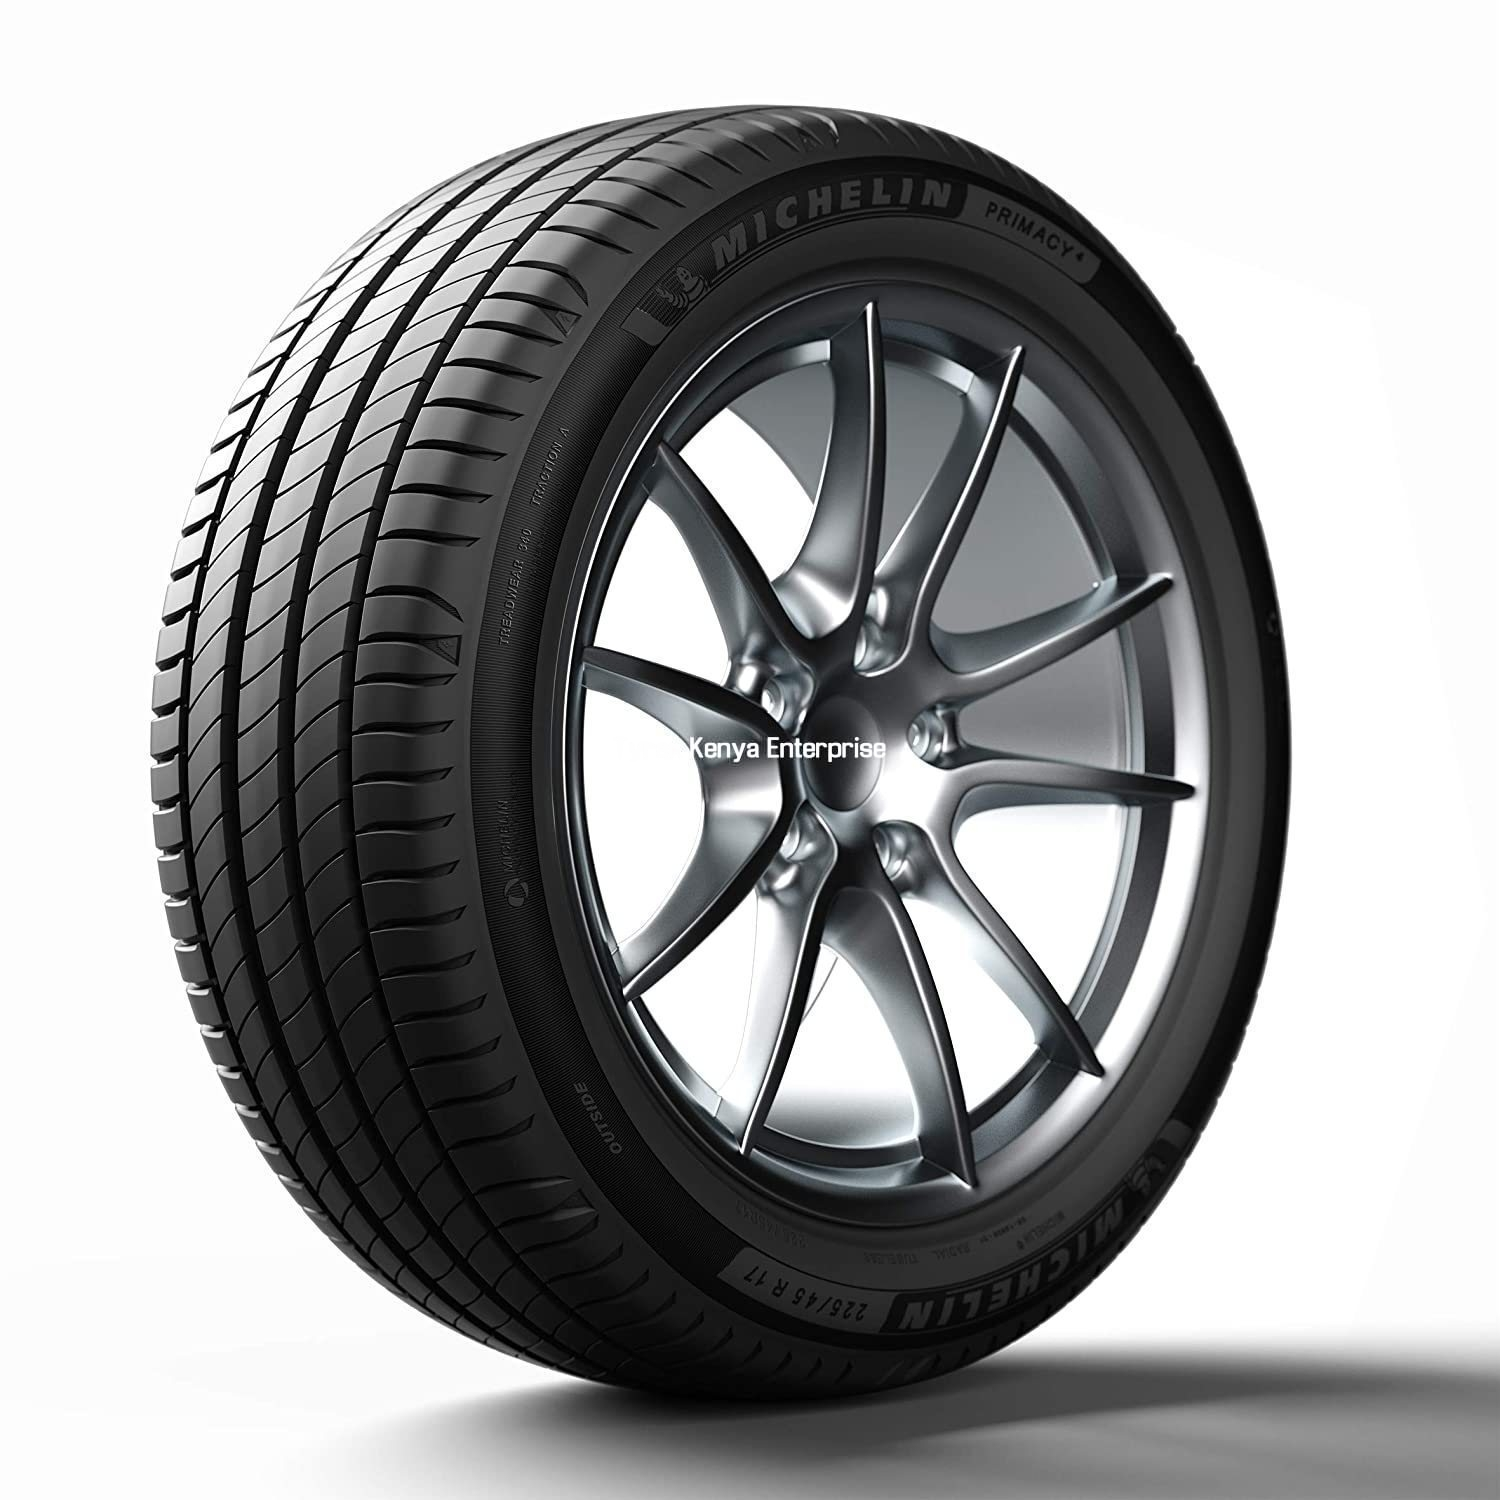 MICHELIN PRIMACY 205/55/R16